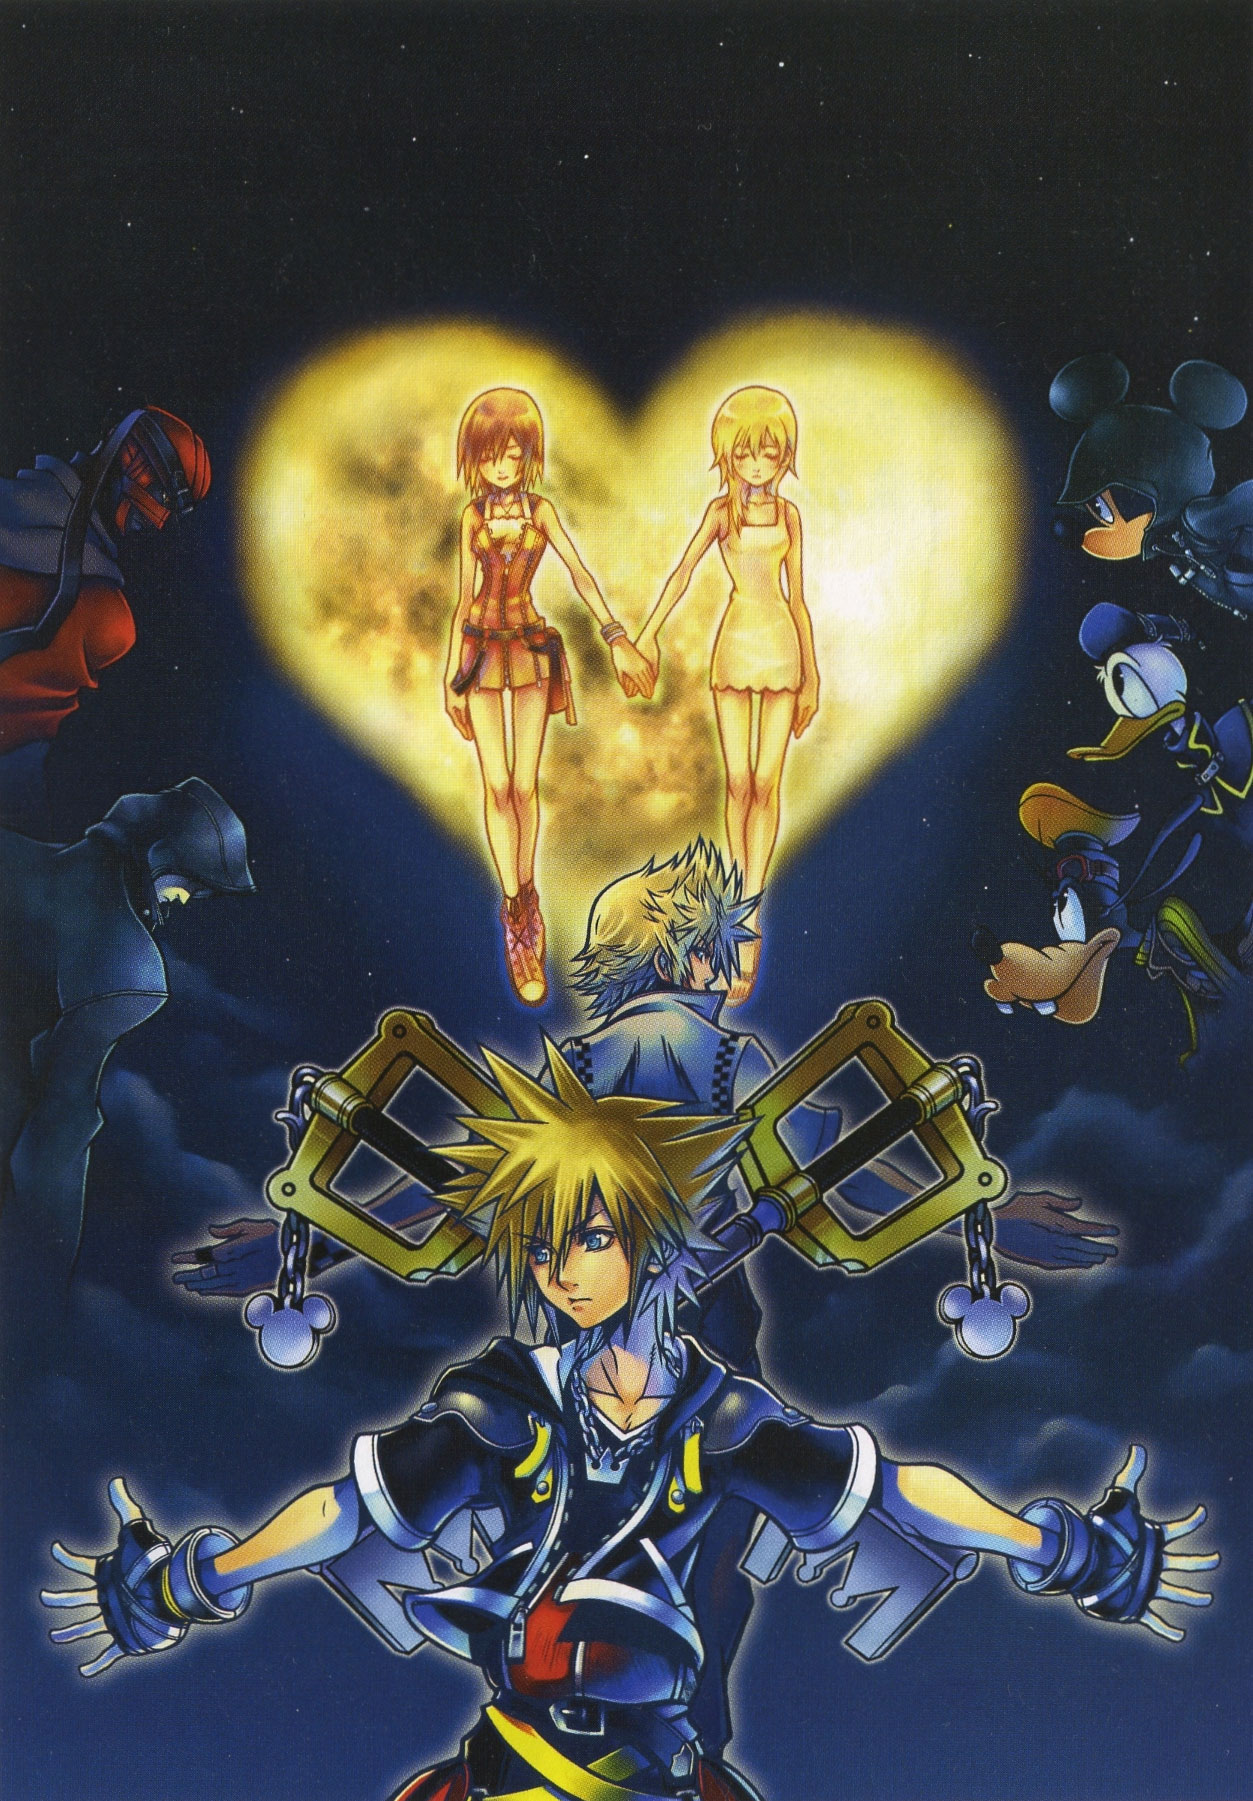 Kingdom Hearts 2 Wallpapers wallpaper Kingdom Hearts 2 Wallpapers hd 1253x1801